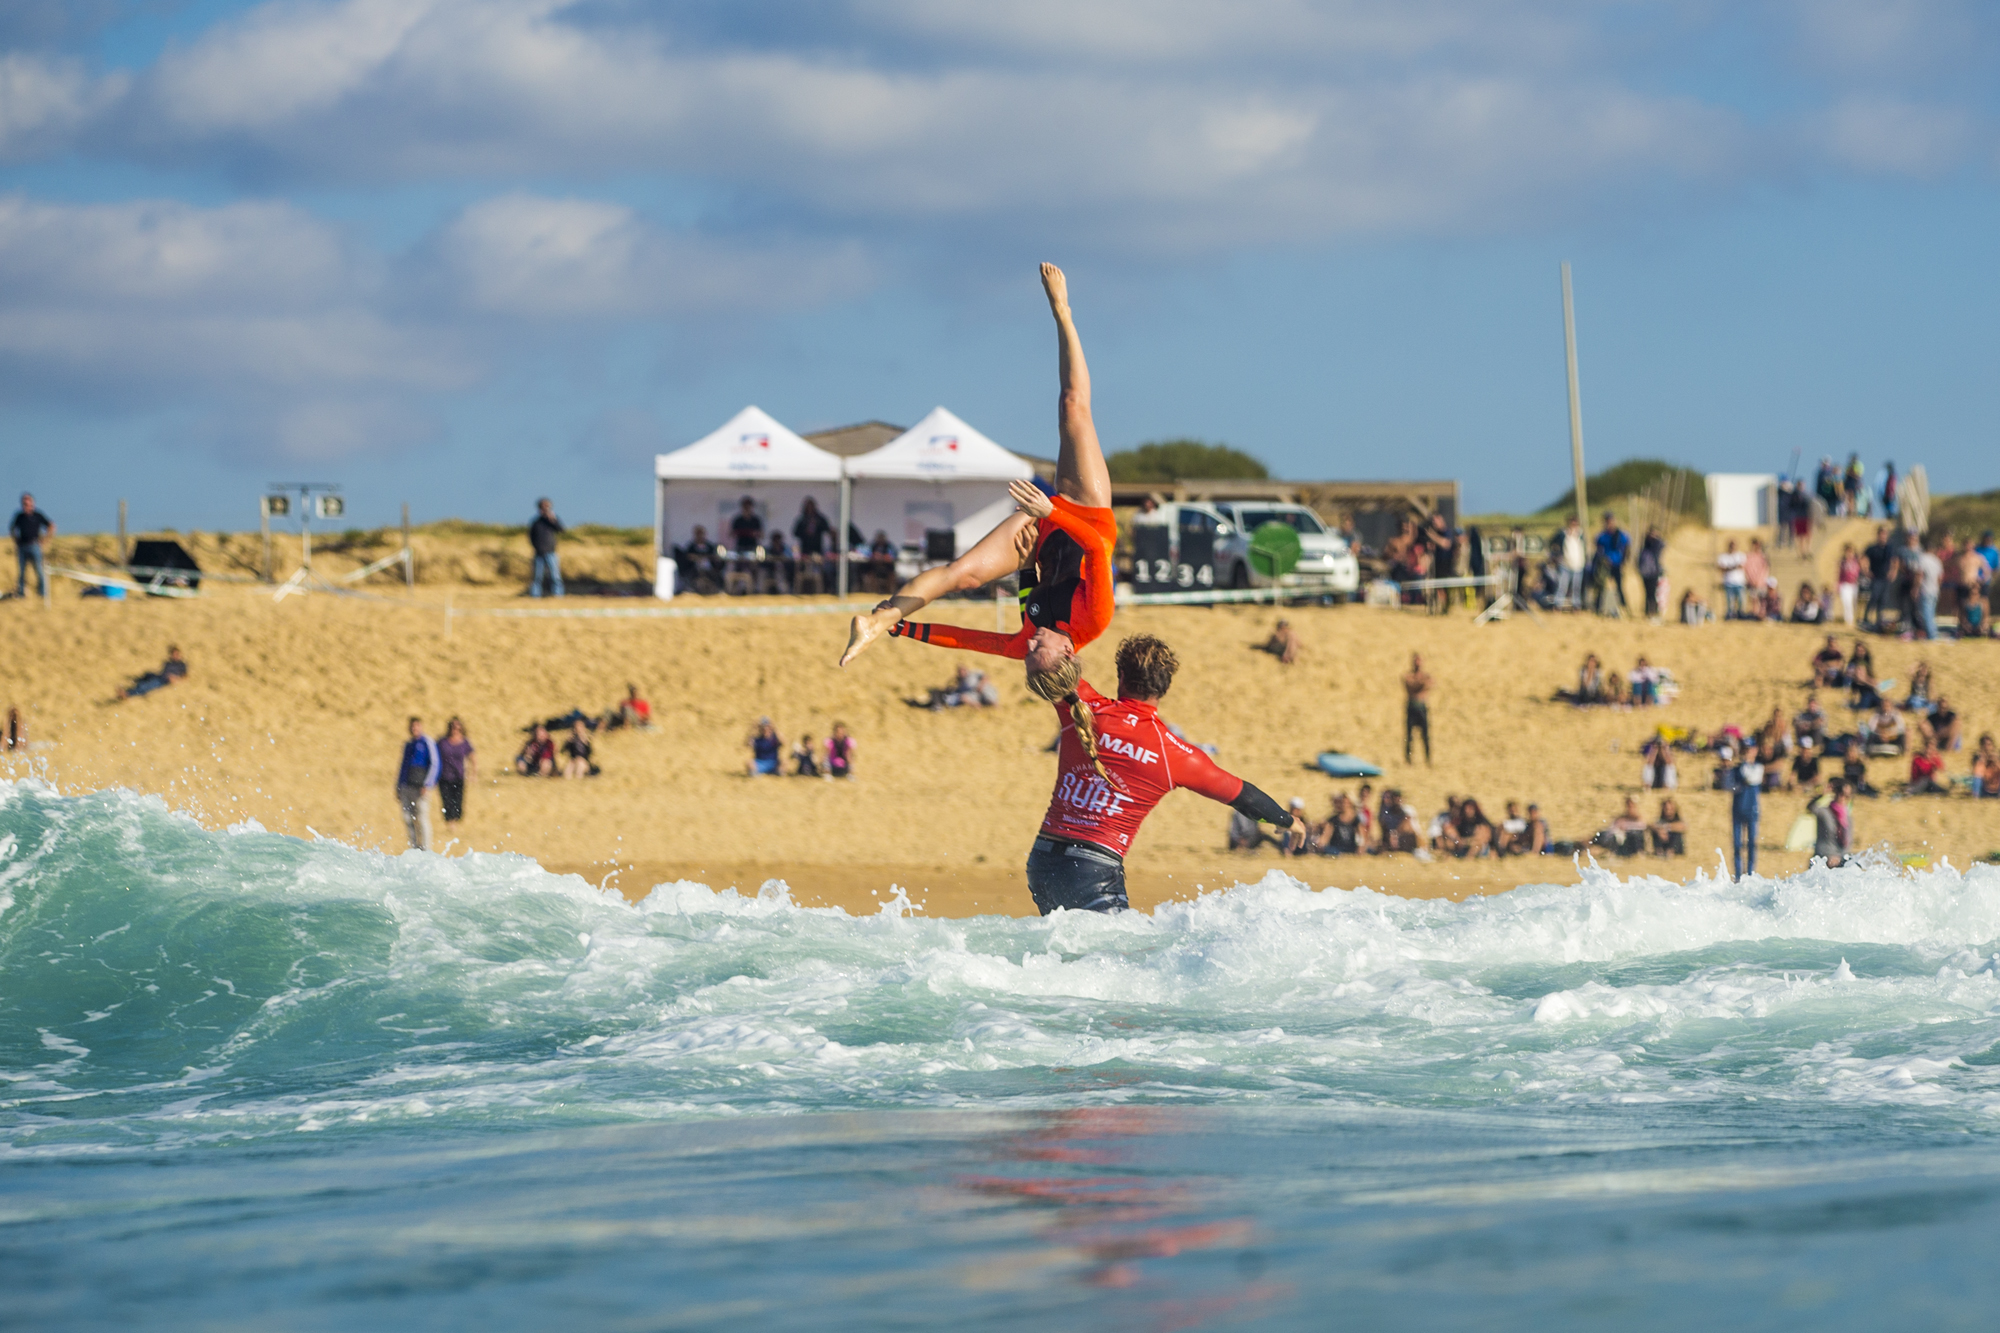 dhelia-clement-cetran-french-surfing-championships-2017-hossegor-we-creative-guillaume-arrieta